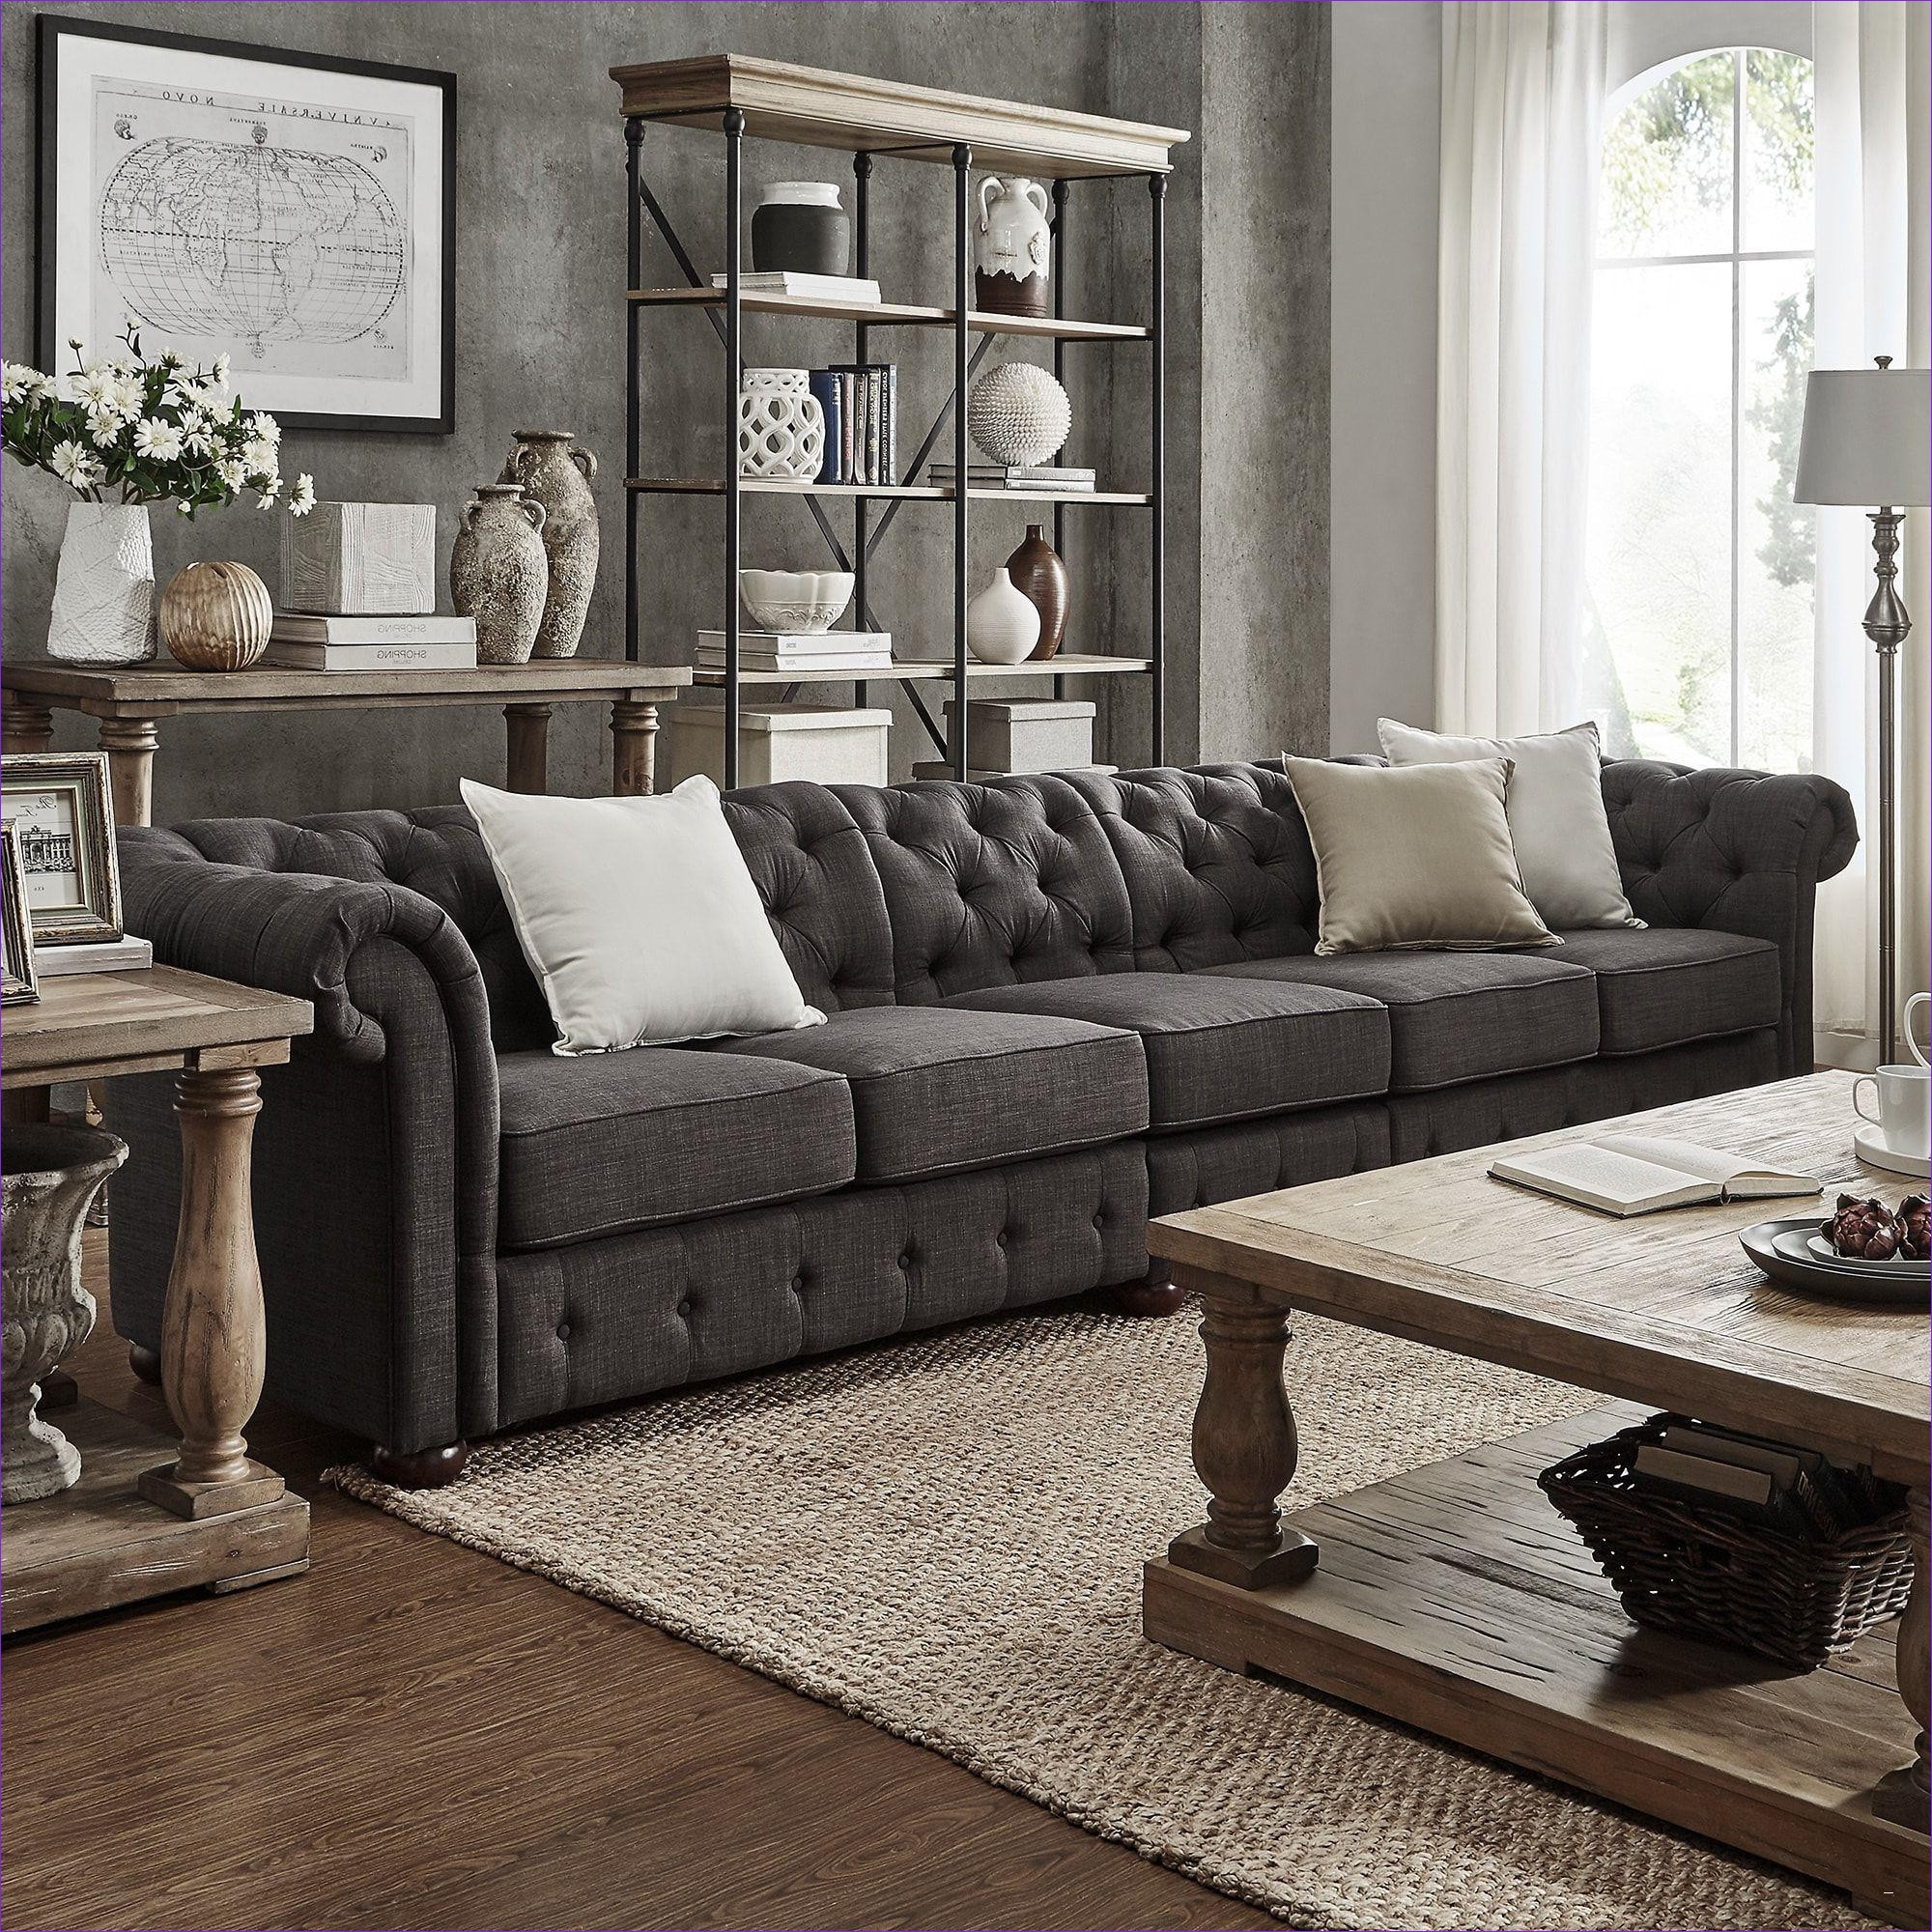 Preferred Aquarius Dark Grey 2 Piece Sectionals With Laf Chaise Throughout 41 Luxury Living Rooms With Sectionals Stock (View 13 of 20)